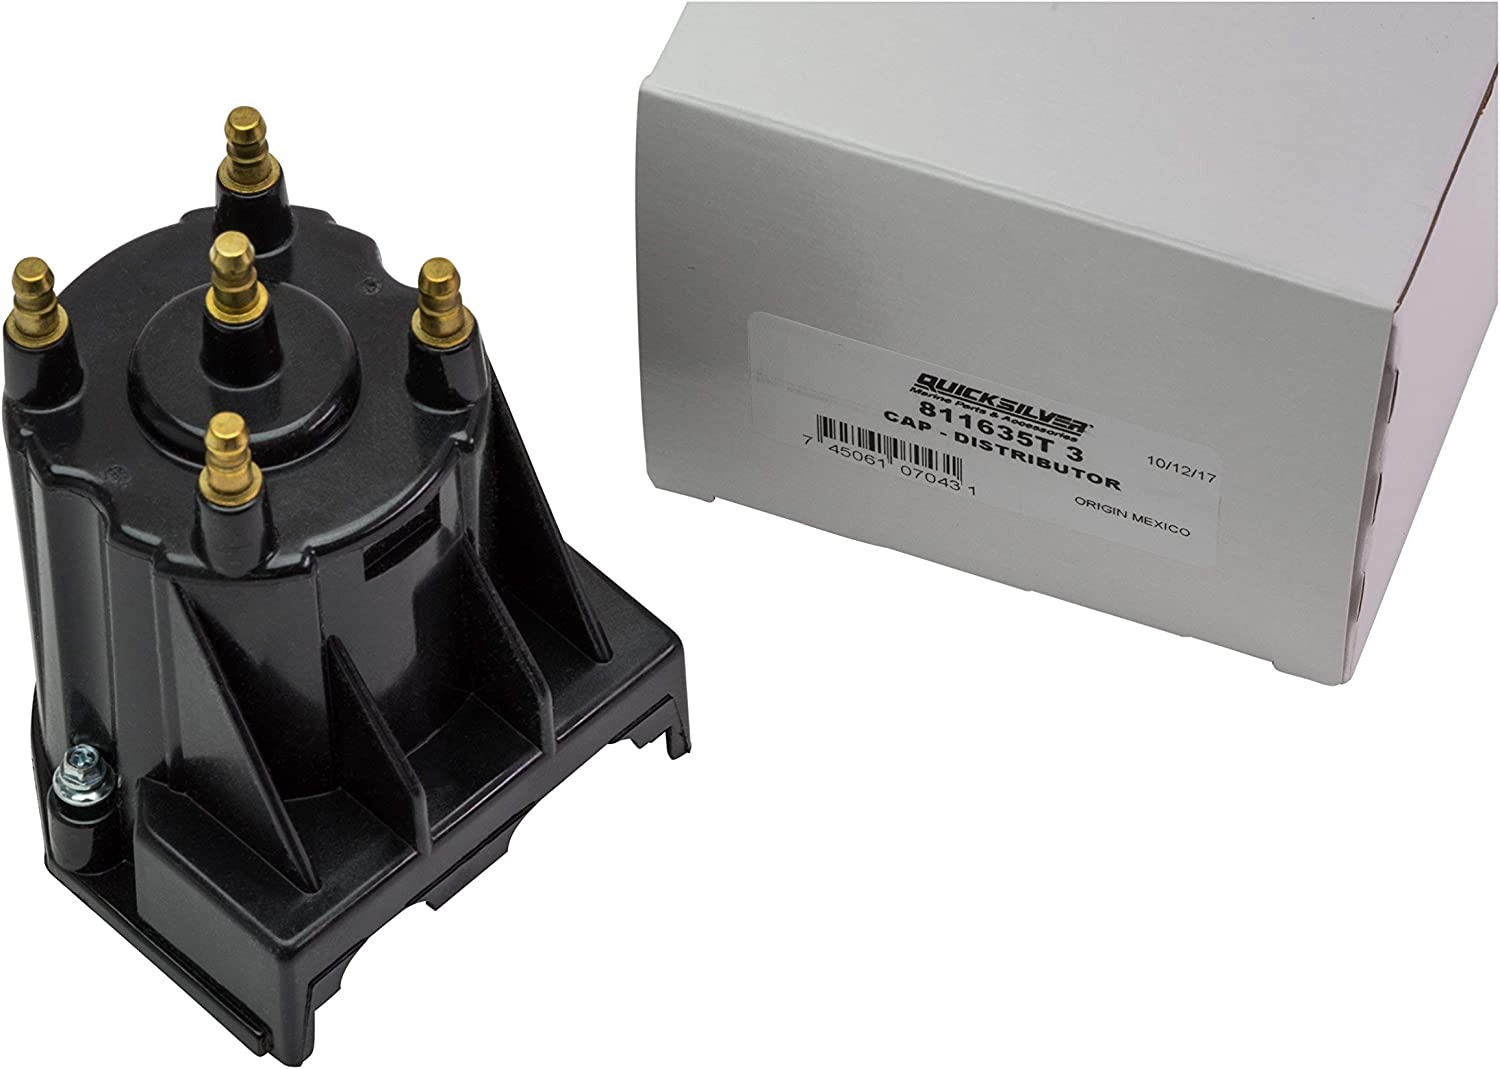 Quicksilver 811635T3 Distributor Cap Marinized 4-Cylinder Engines by General Motors with Delco EST Ignition Systems Renewed